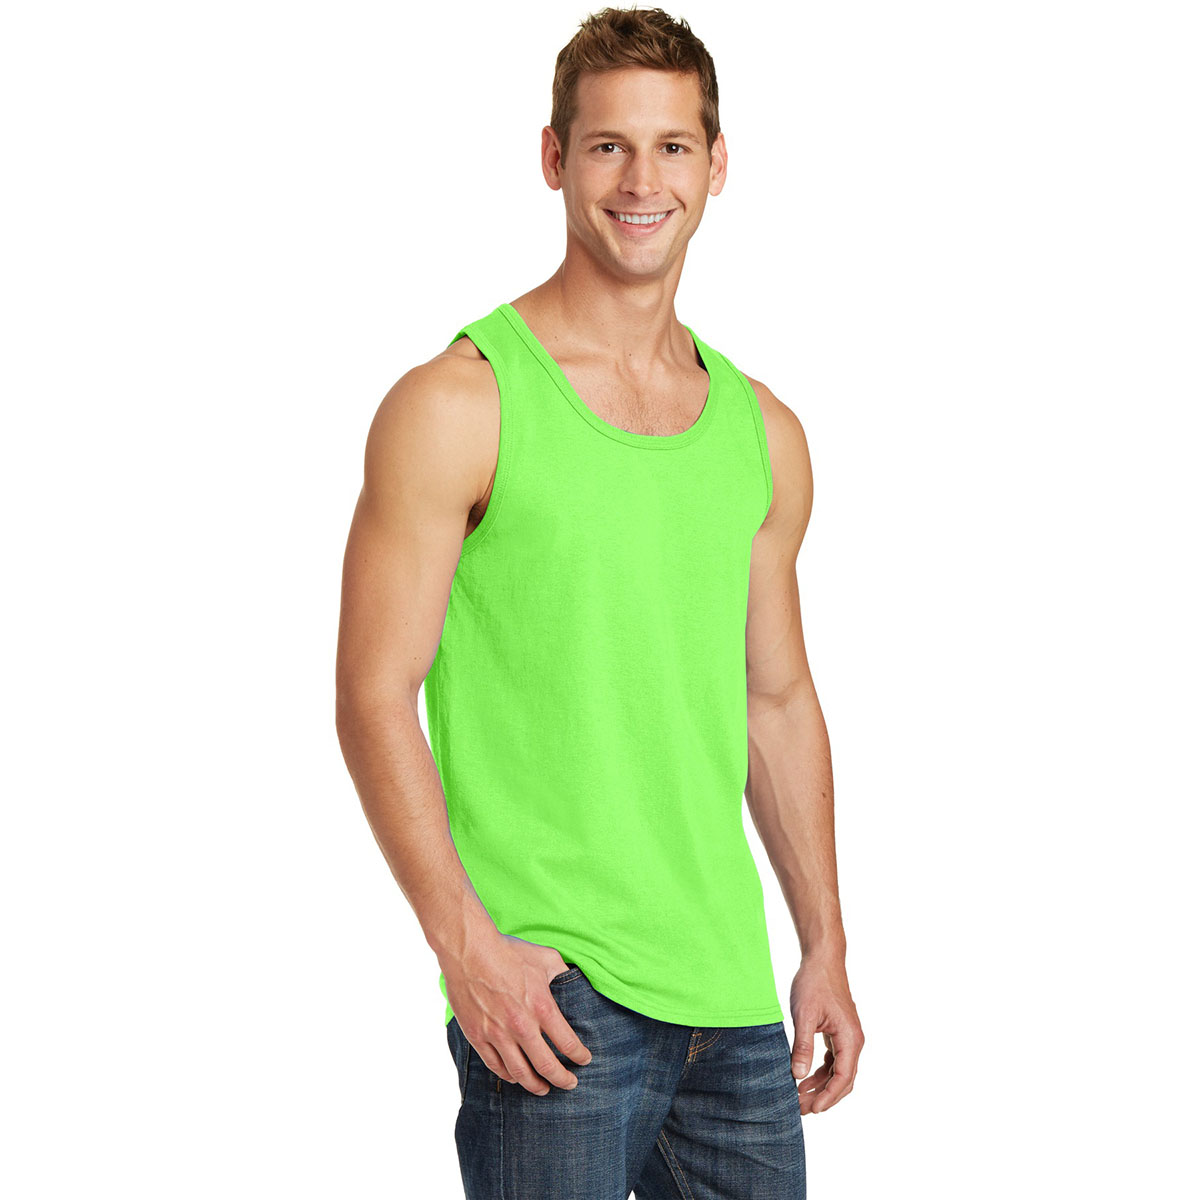 top neon green and - photo #17